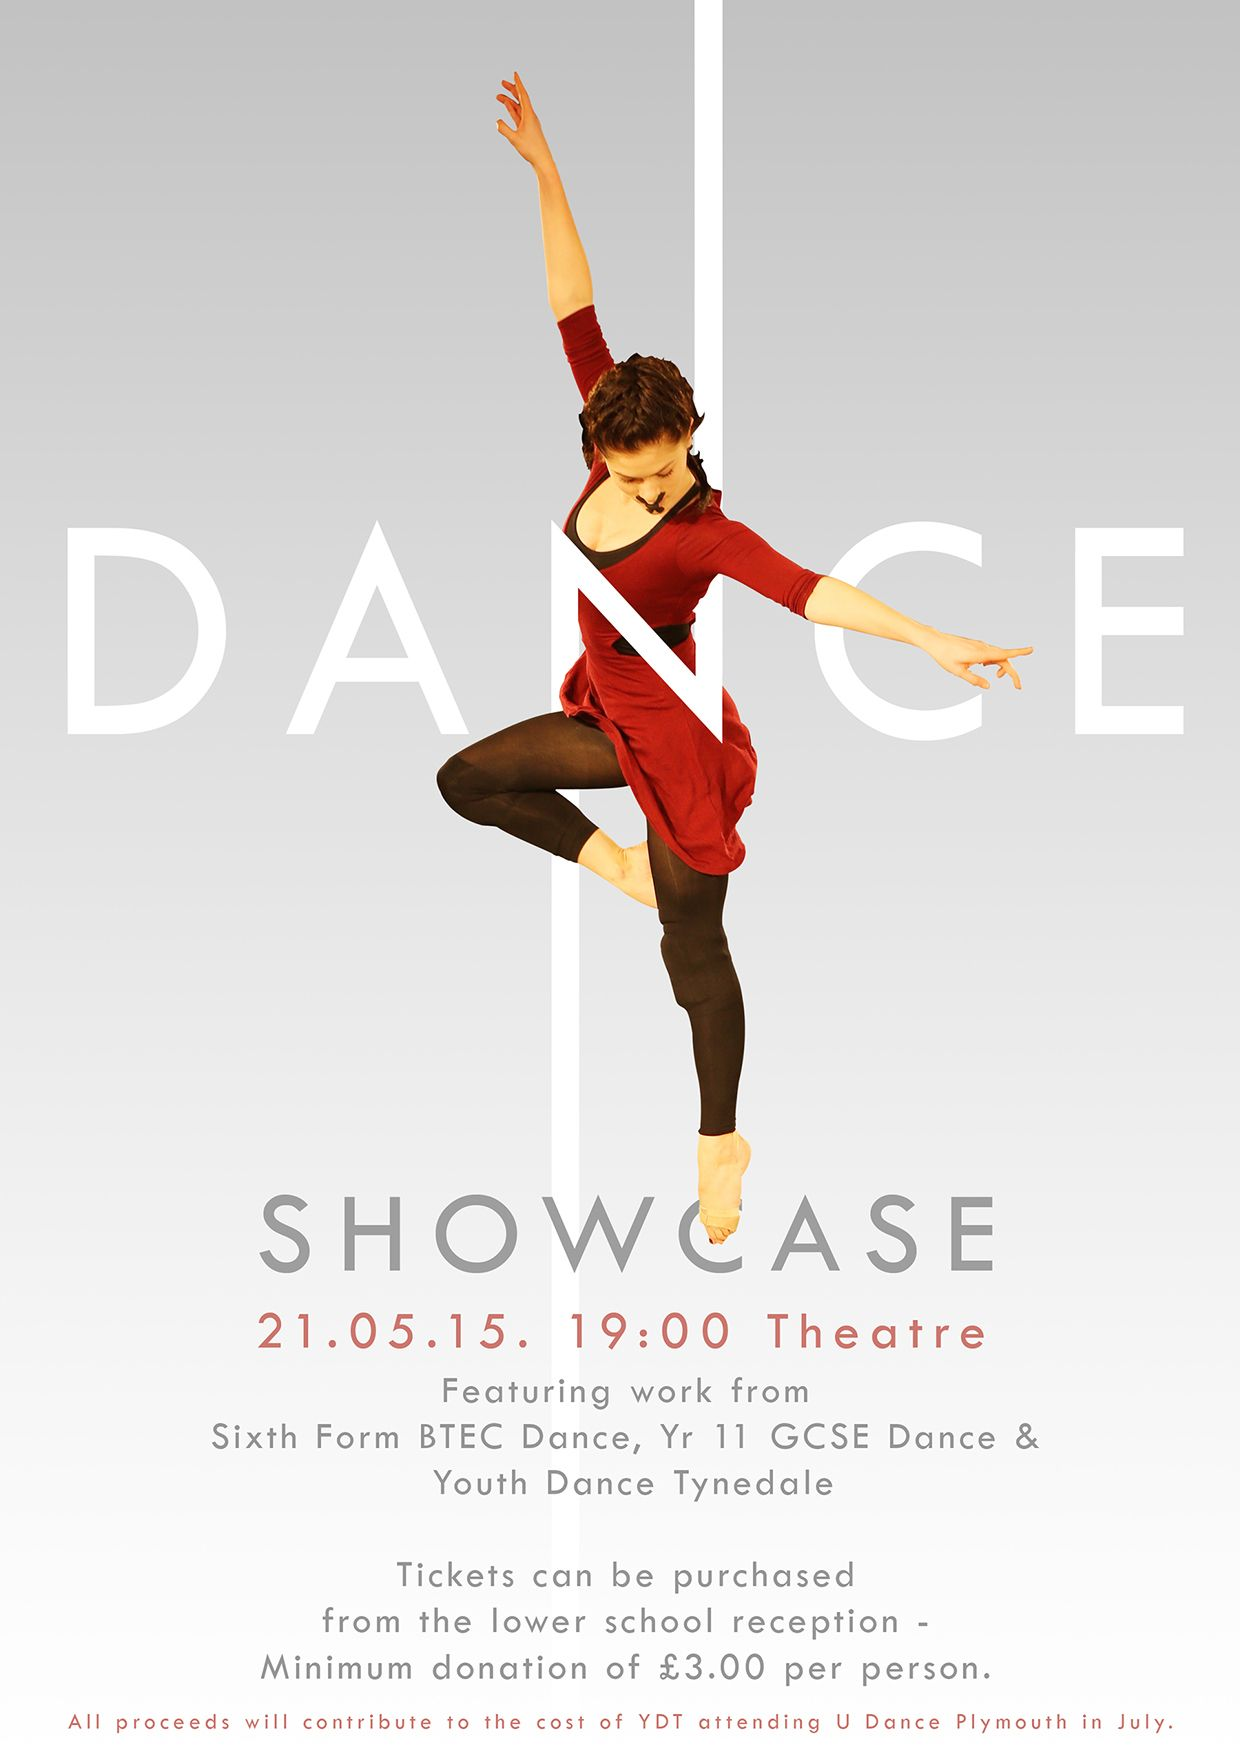 Poster design pinterest - Dance Showcase Poster On Behance